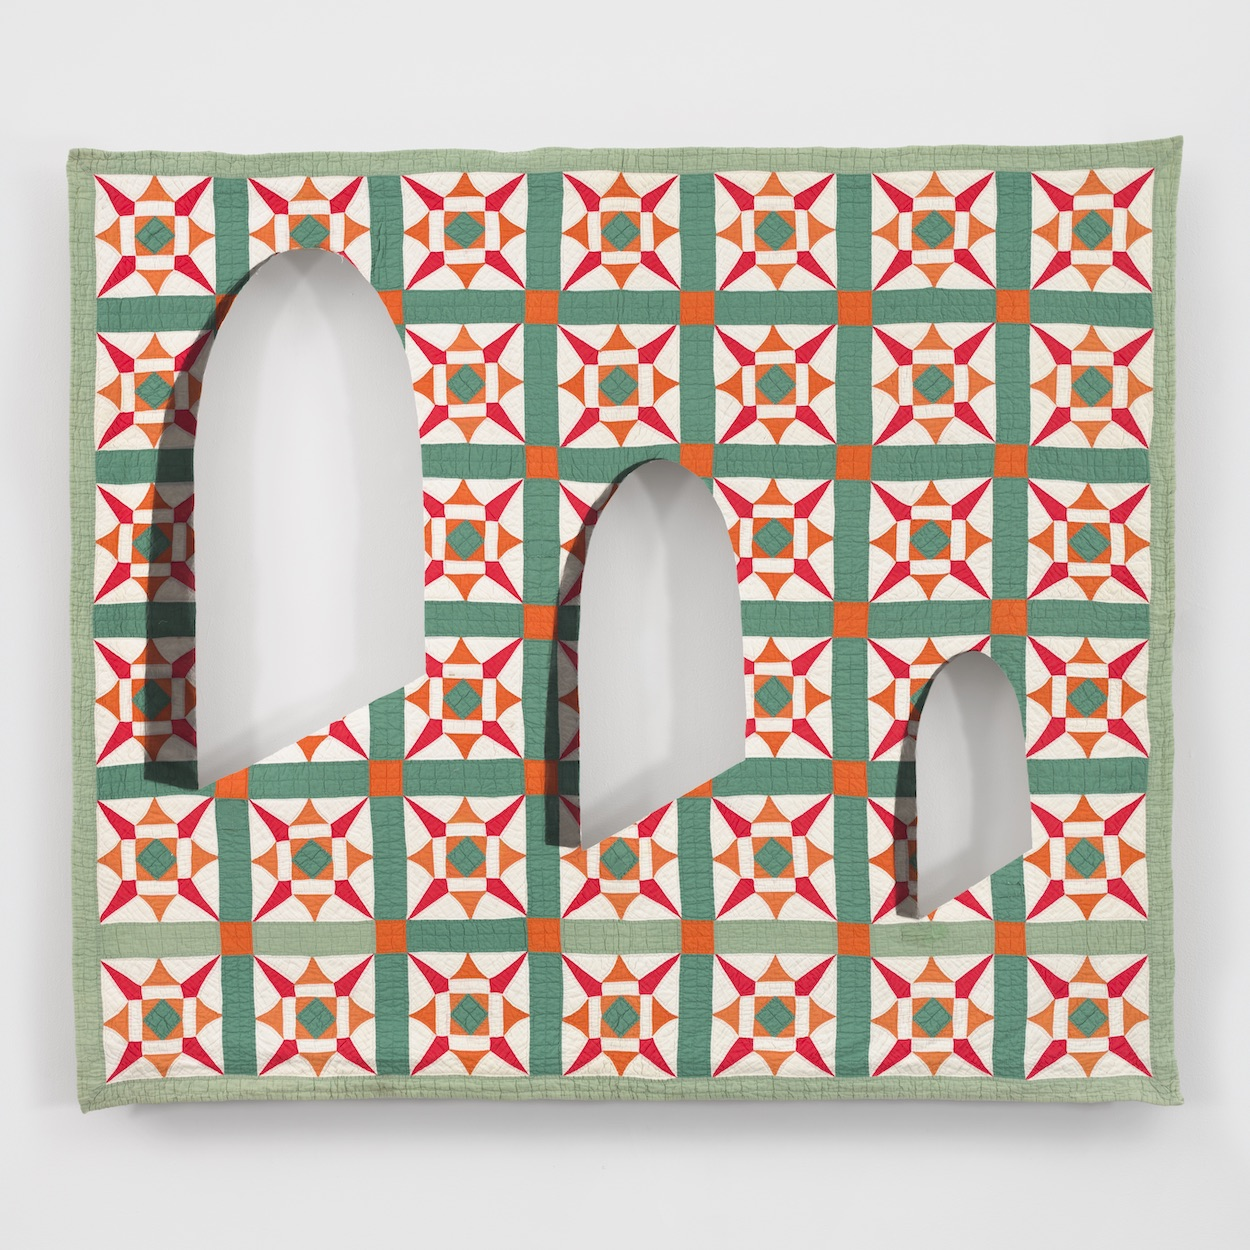 Three spade-like forms, in descending sizes, are juxtaposed in a horizontal row against a quilt with a grid of green, white, and red snowflake patterns.